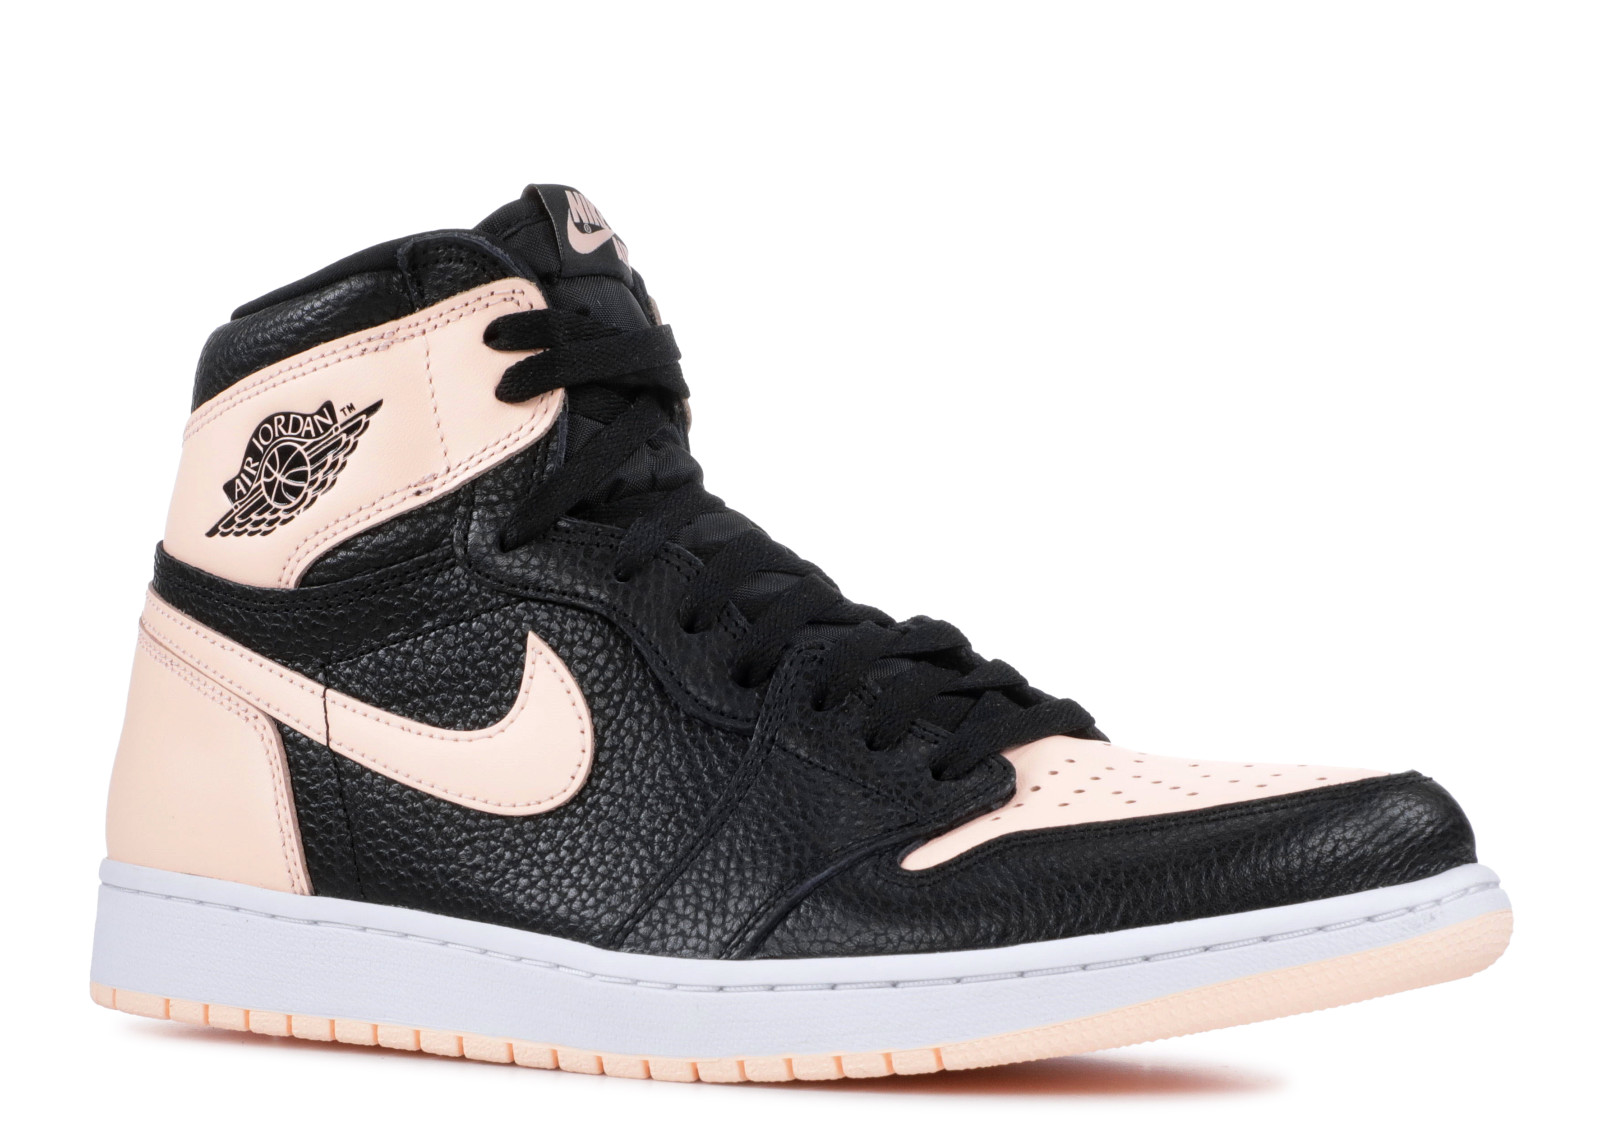 32f2ae240933 Jordan 1 Retro High Black Crimson Tint - 1